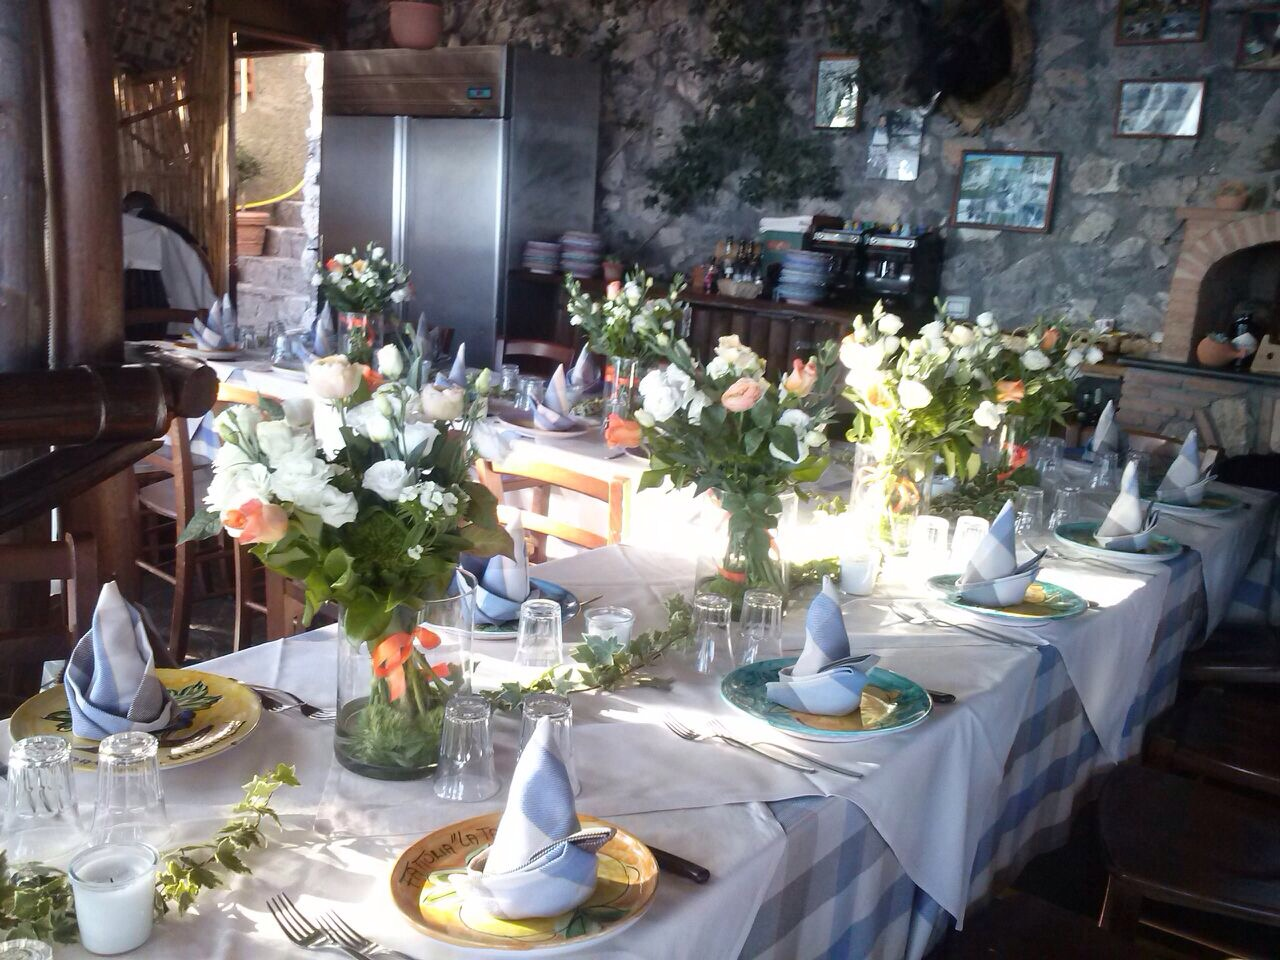 http://www.weddingamalfi.com/wp-content/uploads/Laura-and-Jarrod-fresh-flowers-wedding-table.jpg